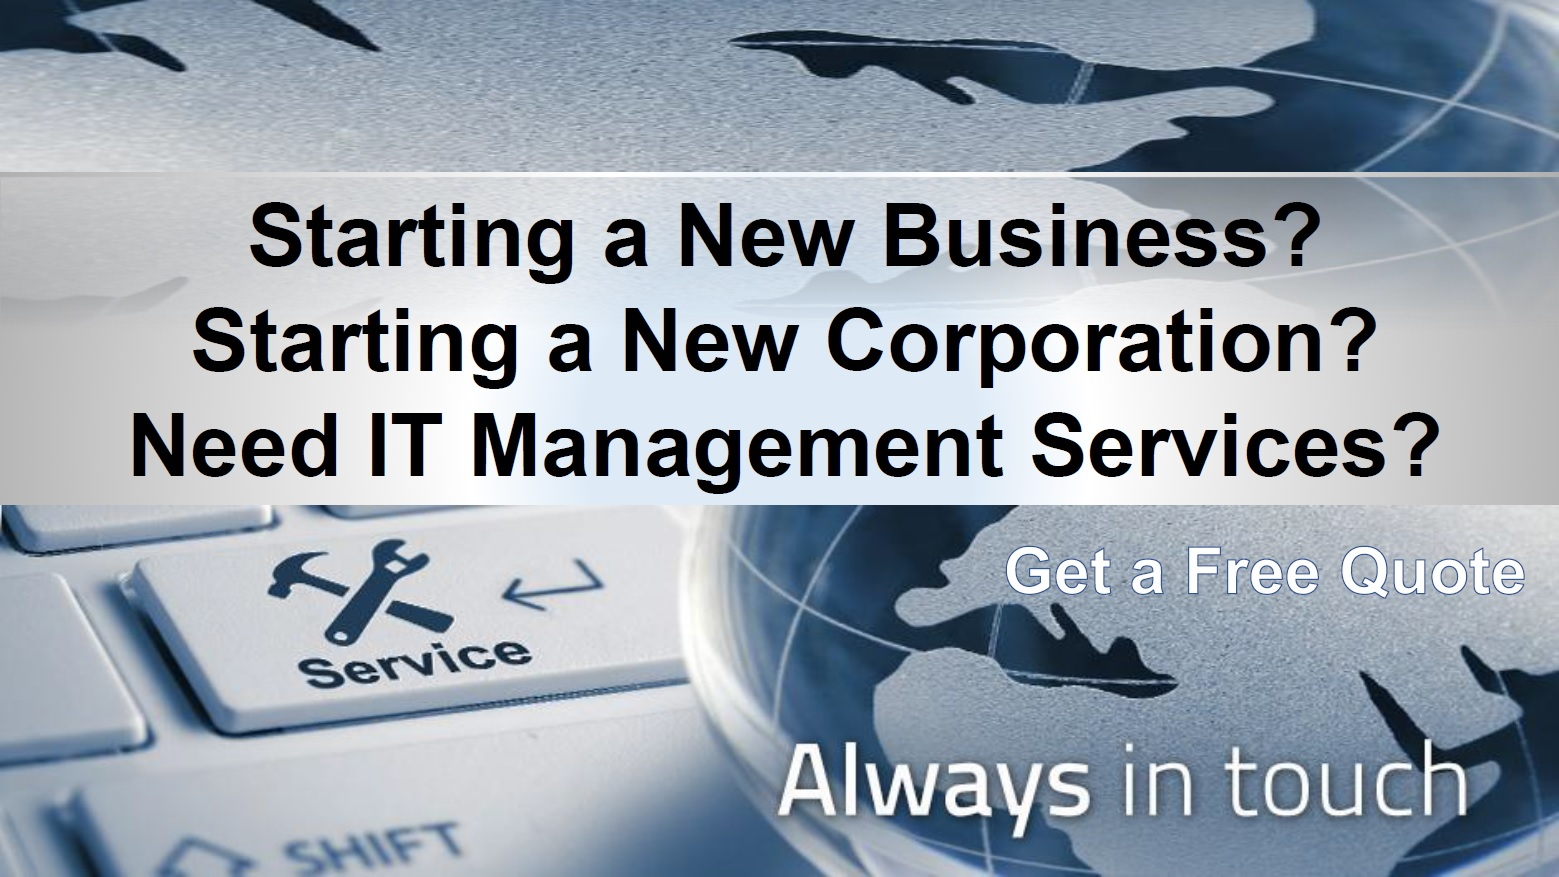 Click Here to learn more about our IT MANAGEMENT & SERVICES